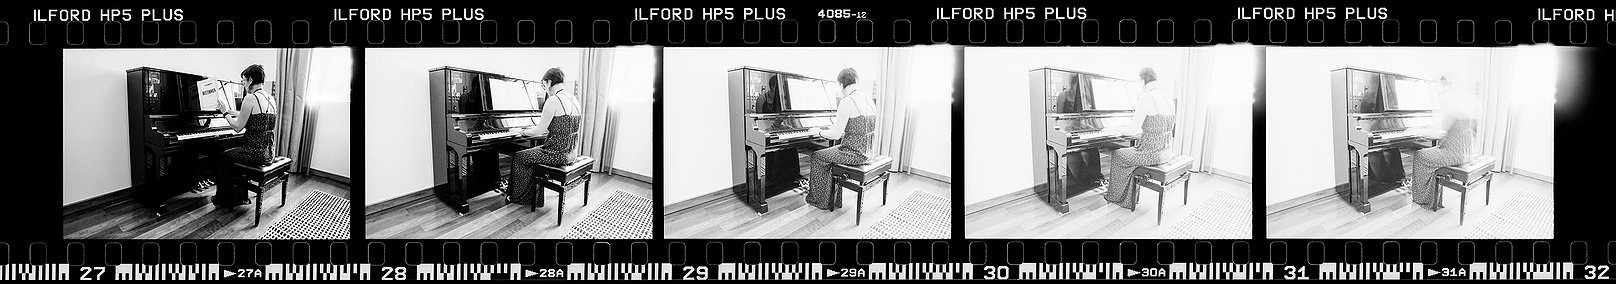 Negative strip of five frames progressively getting overexposed, that show someone at piano.